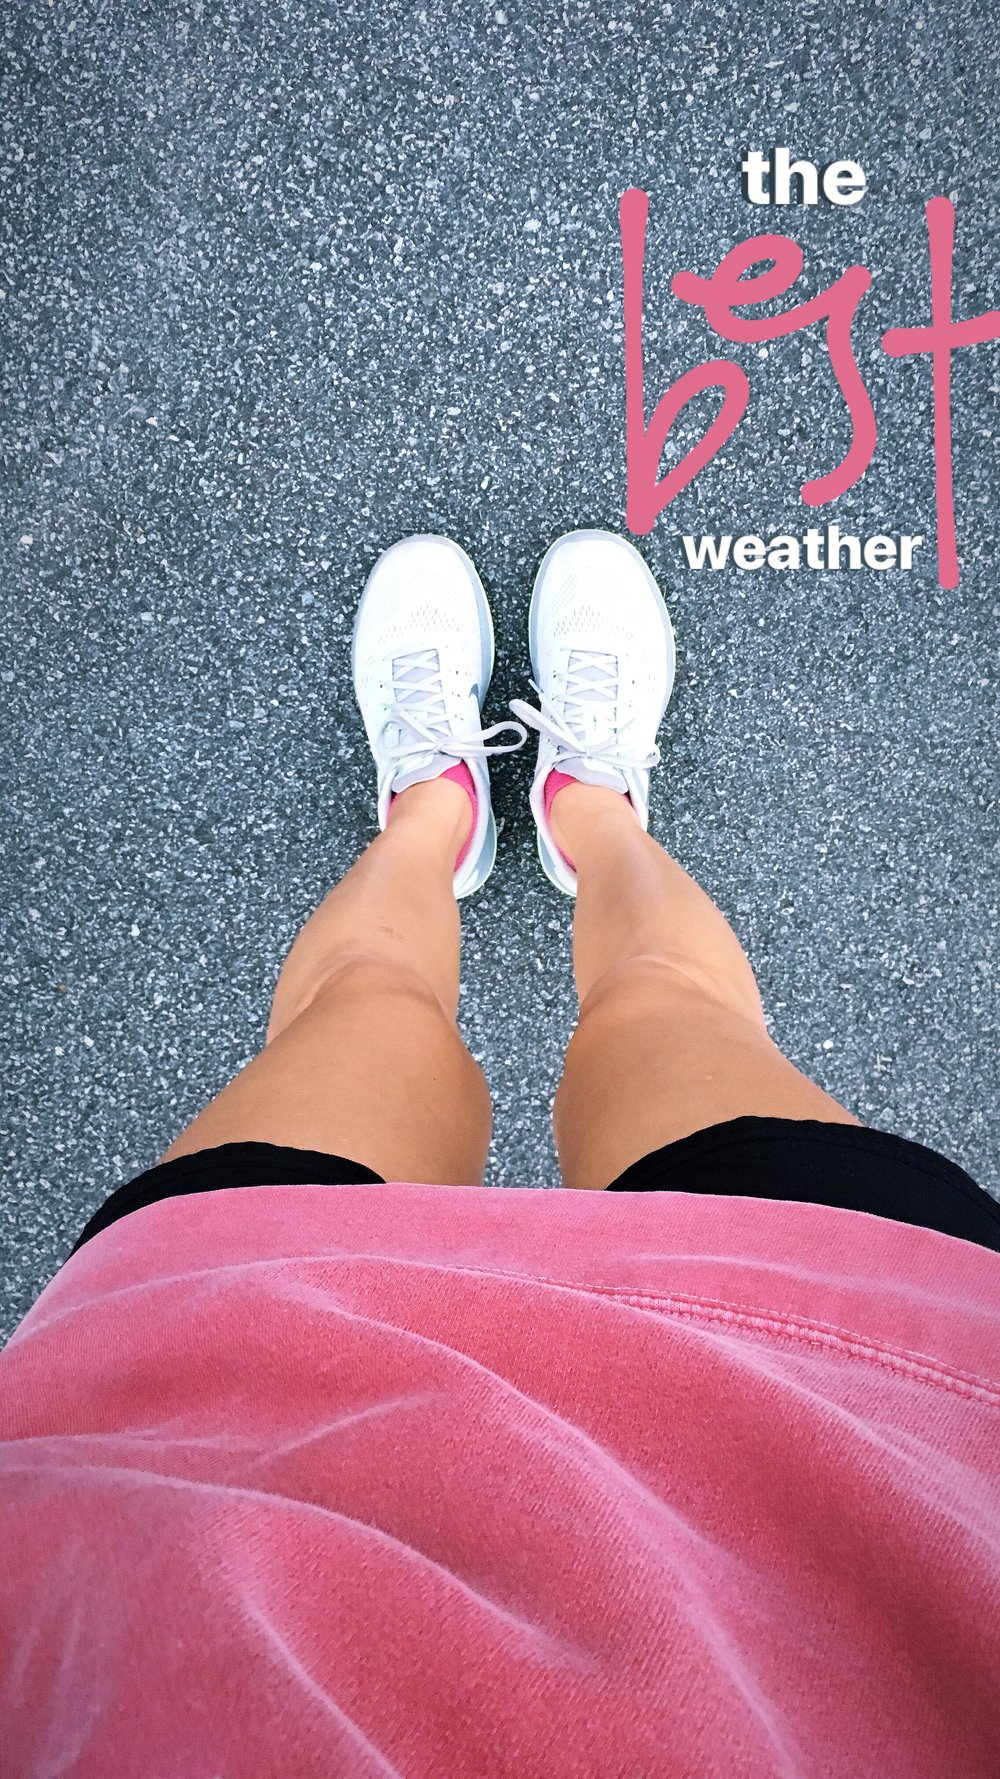 Shorts + sweatshirts. There's nothing better.